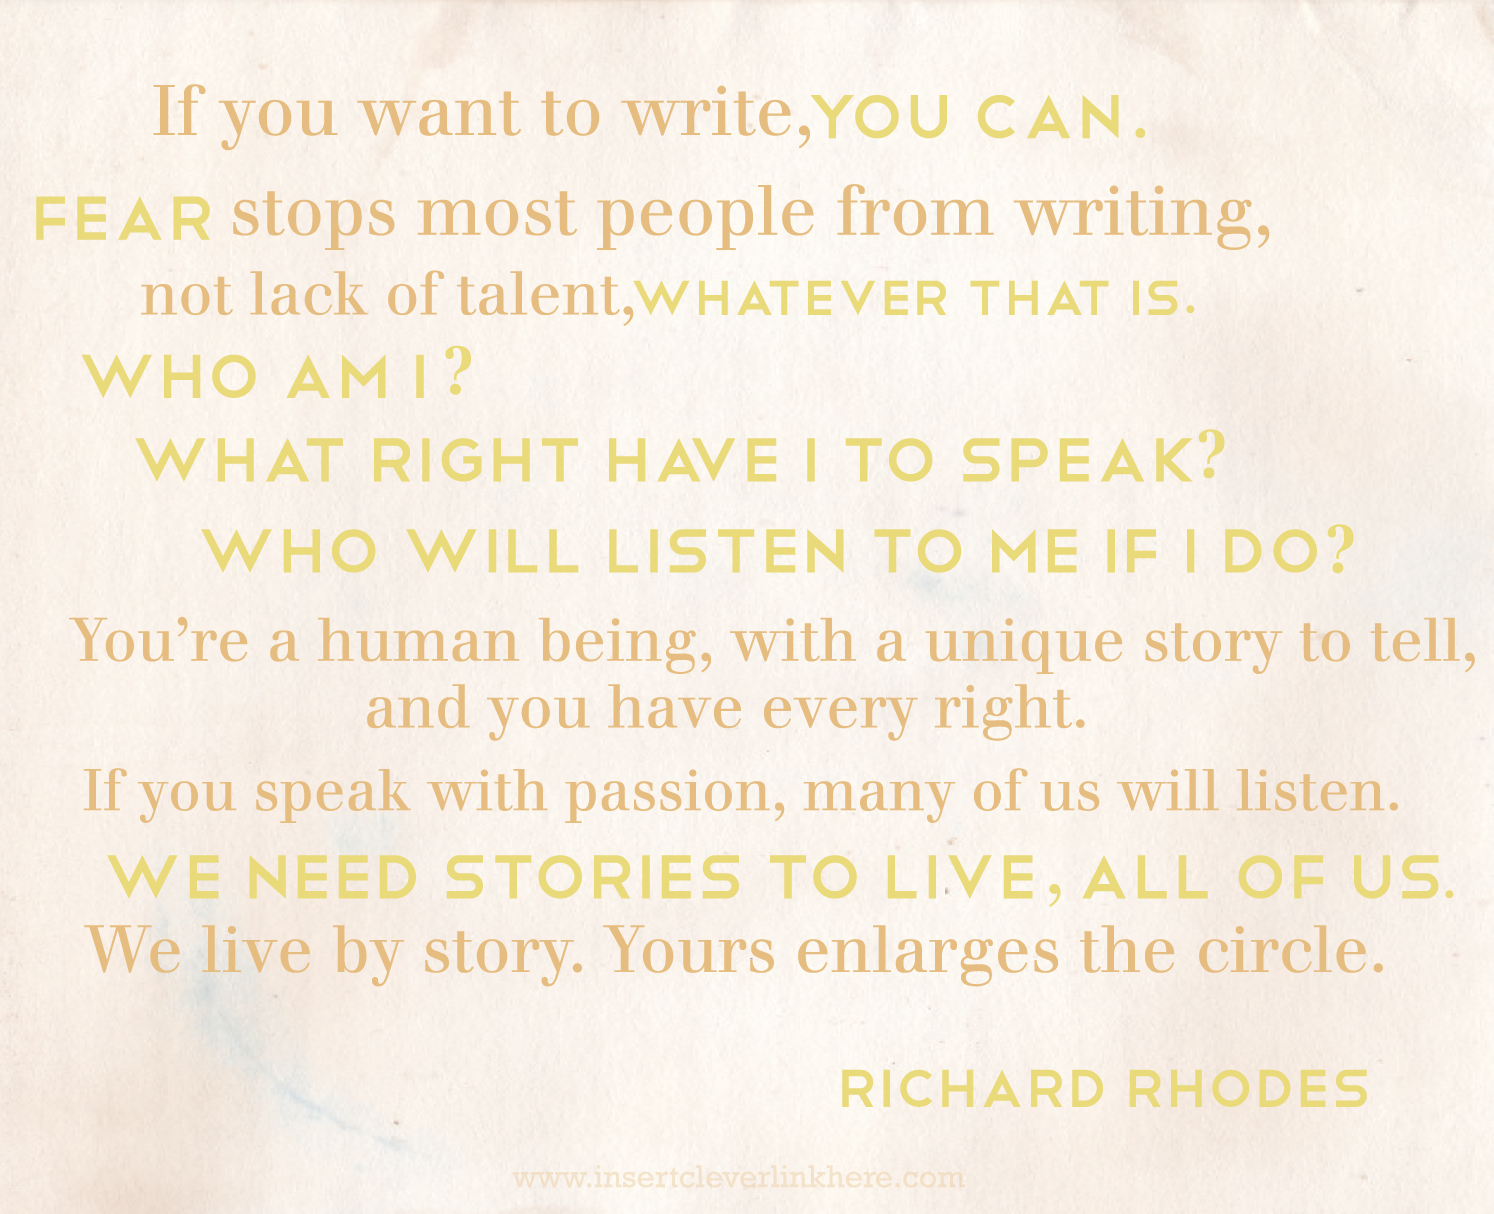 Richard Rhodes's quote #3